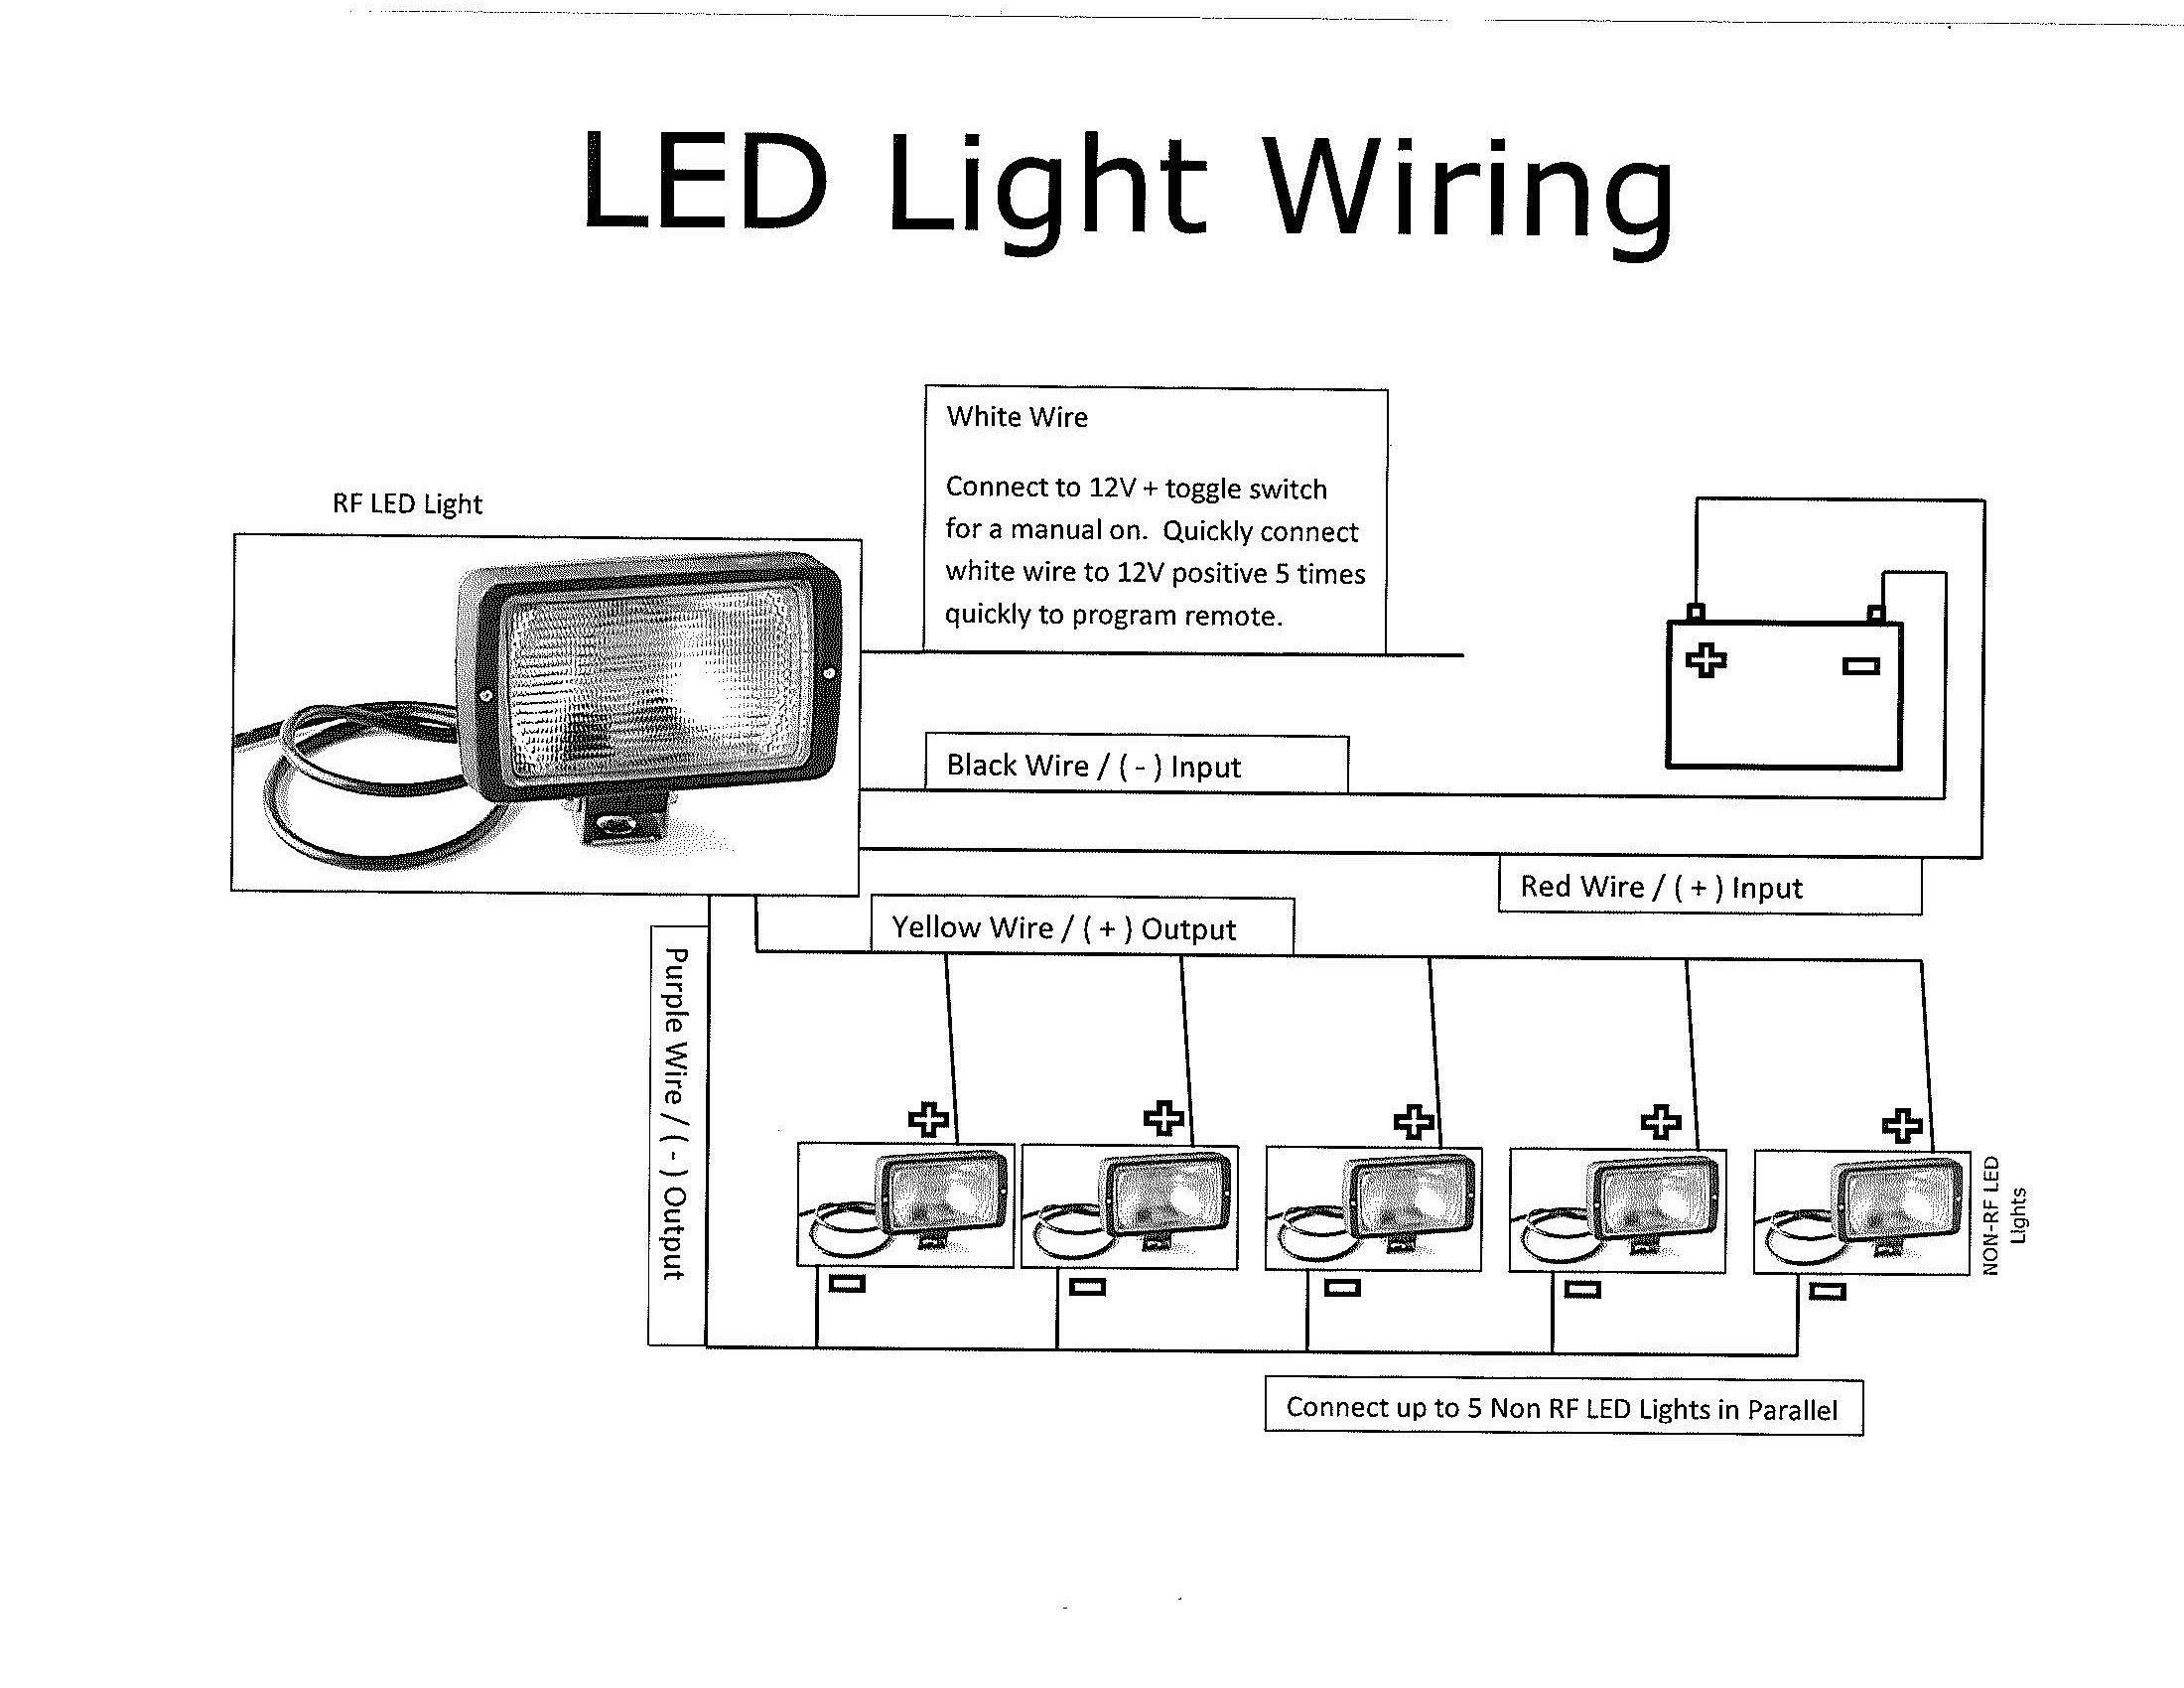 Wiring Diagram For Led Lights - Get Rid Of Wiring Diagram ... on 3 wiring diagram, 3 light switch, 3 way light diagram,